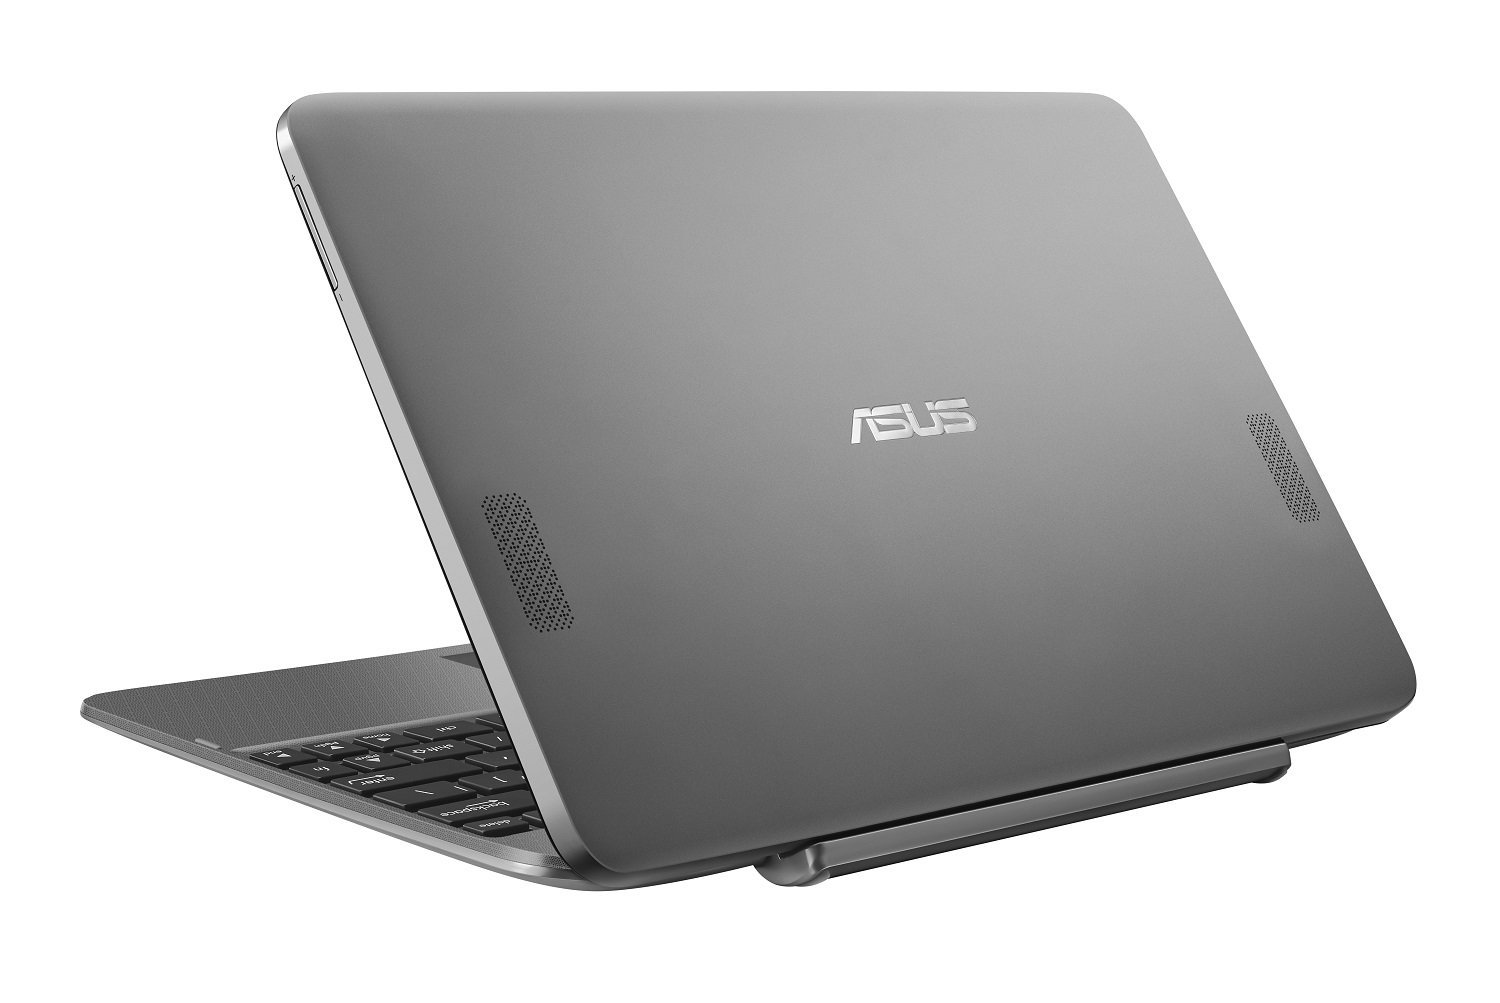 asus t101ha gr030t pc portable 2 en 1 tactile 10 1 metal 2 meilleur top 10. Black Bedroom Furniture Sets. Home Design Ideas